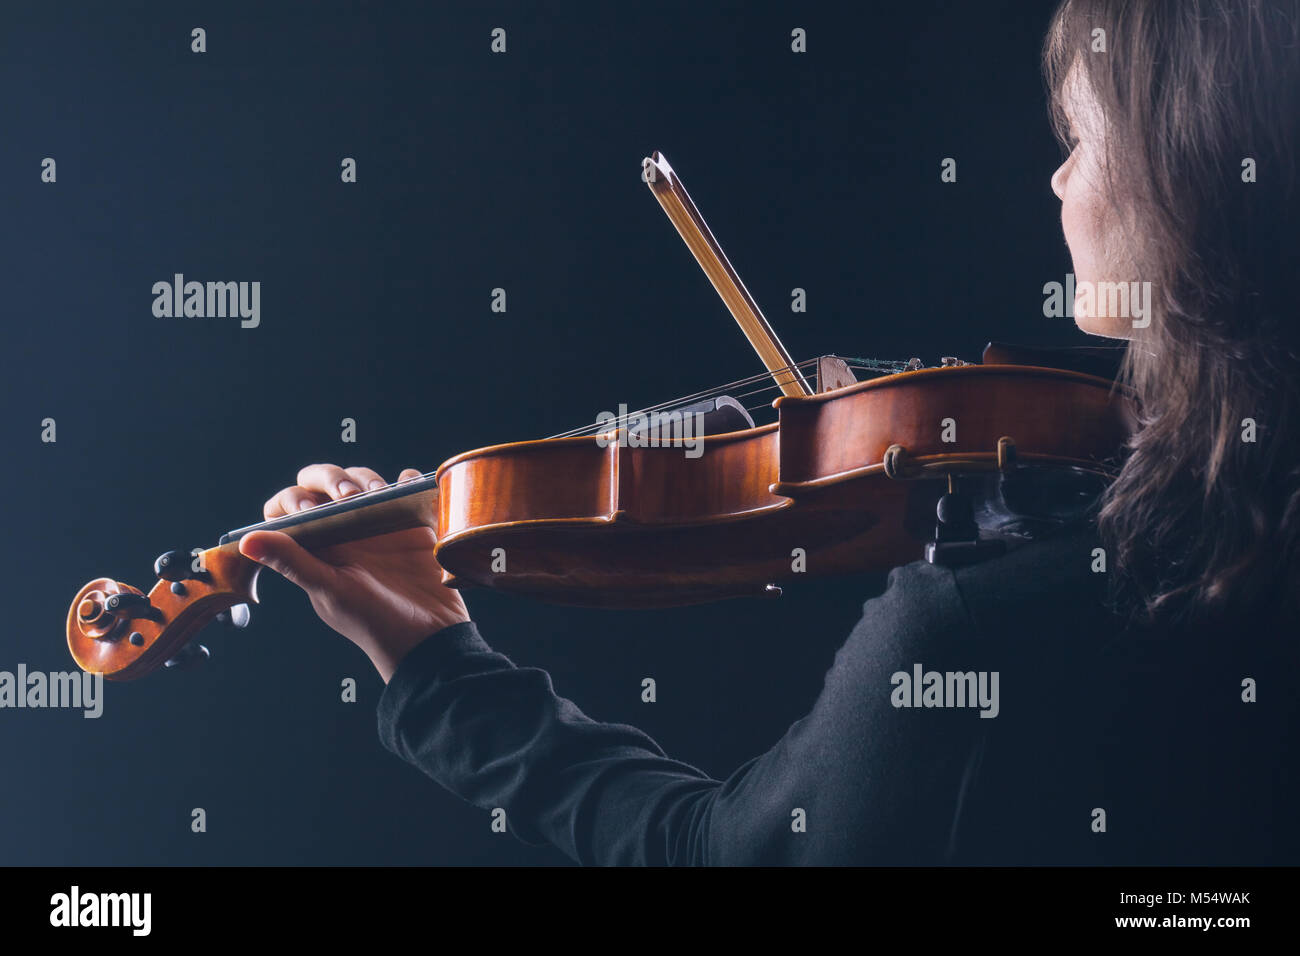 Playing the violin. Woman playing the violin with her back to the camera on a black background - Stock Image